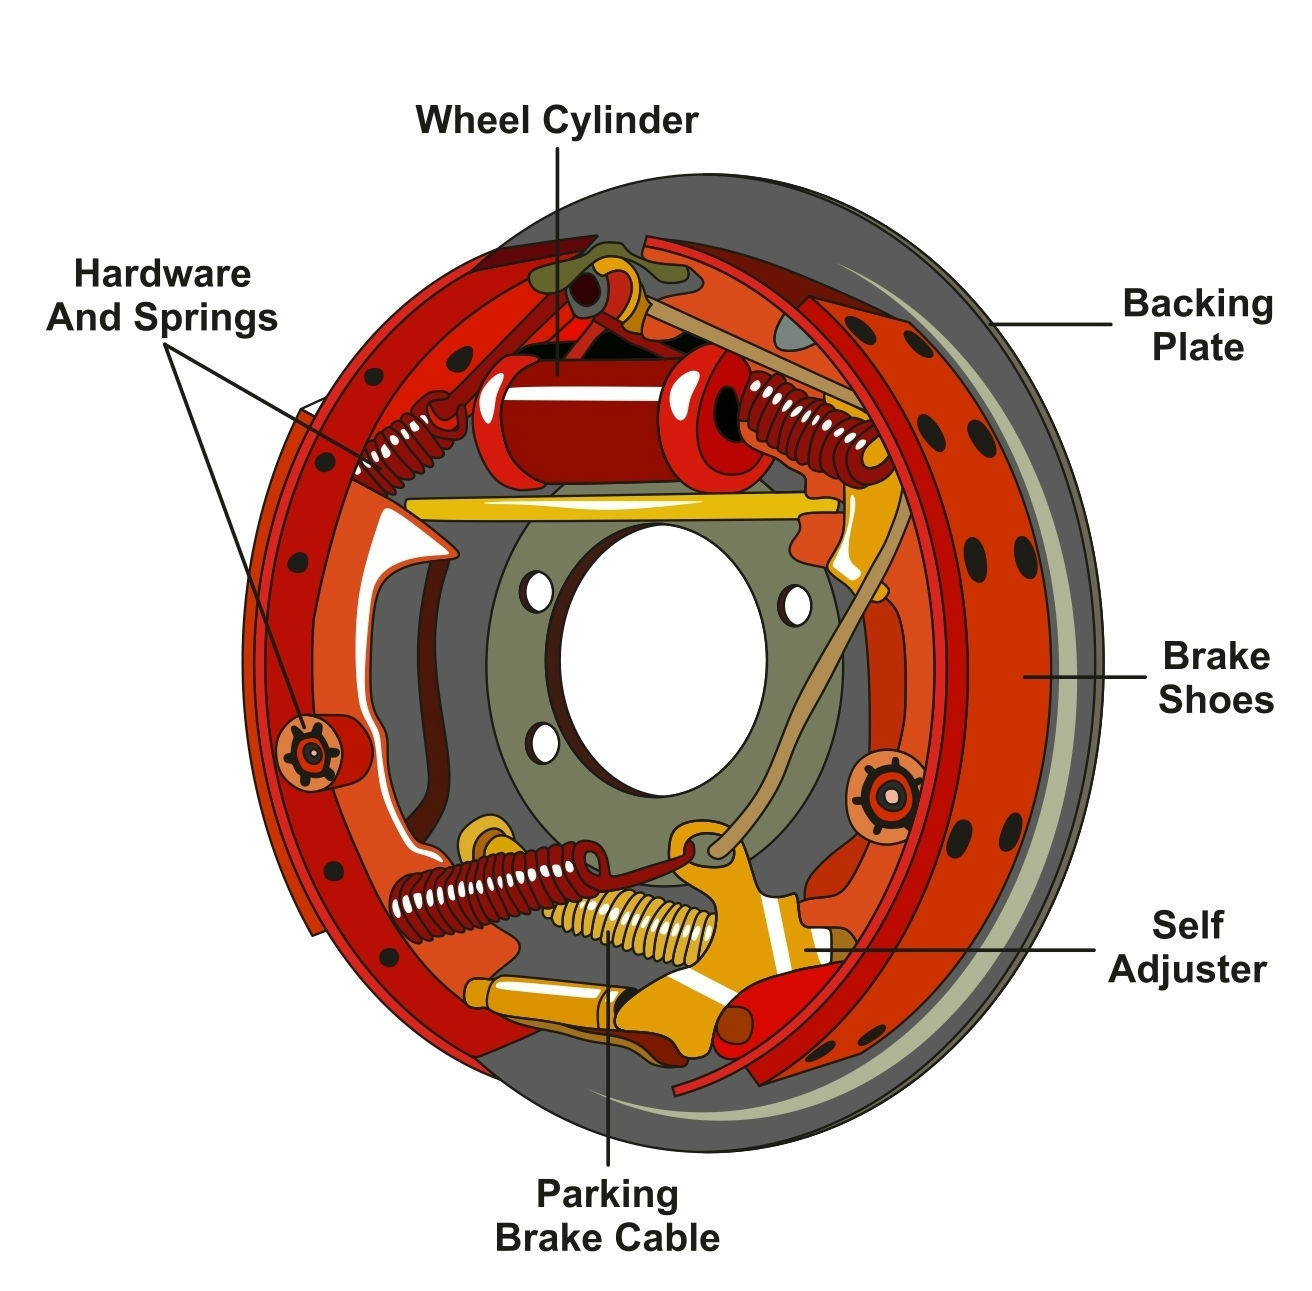 Wheel And ke Diagram - basic electrical wiring theory on